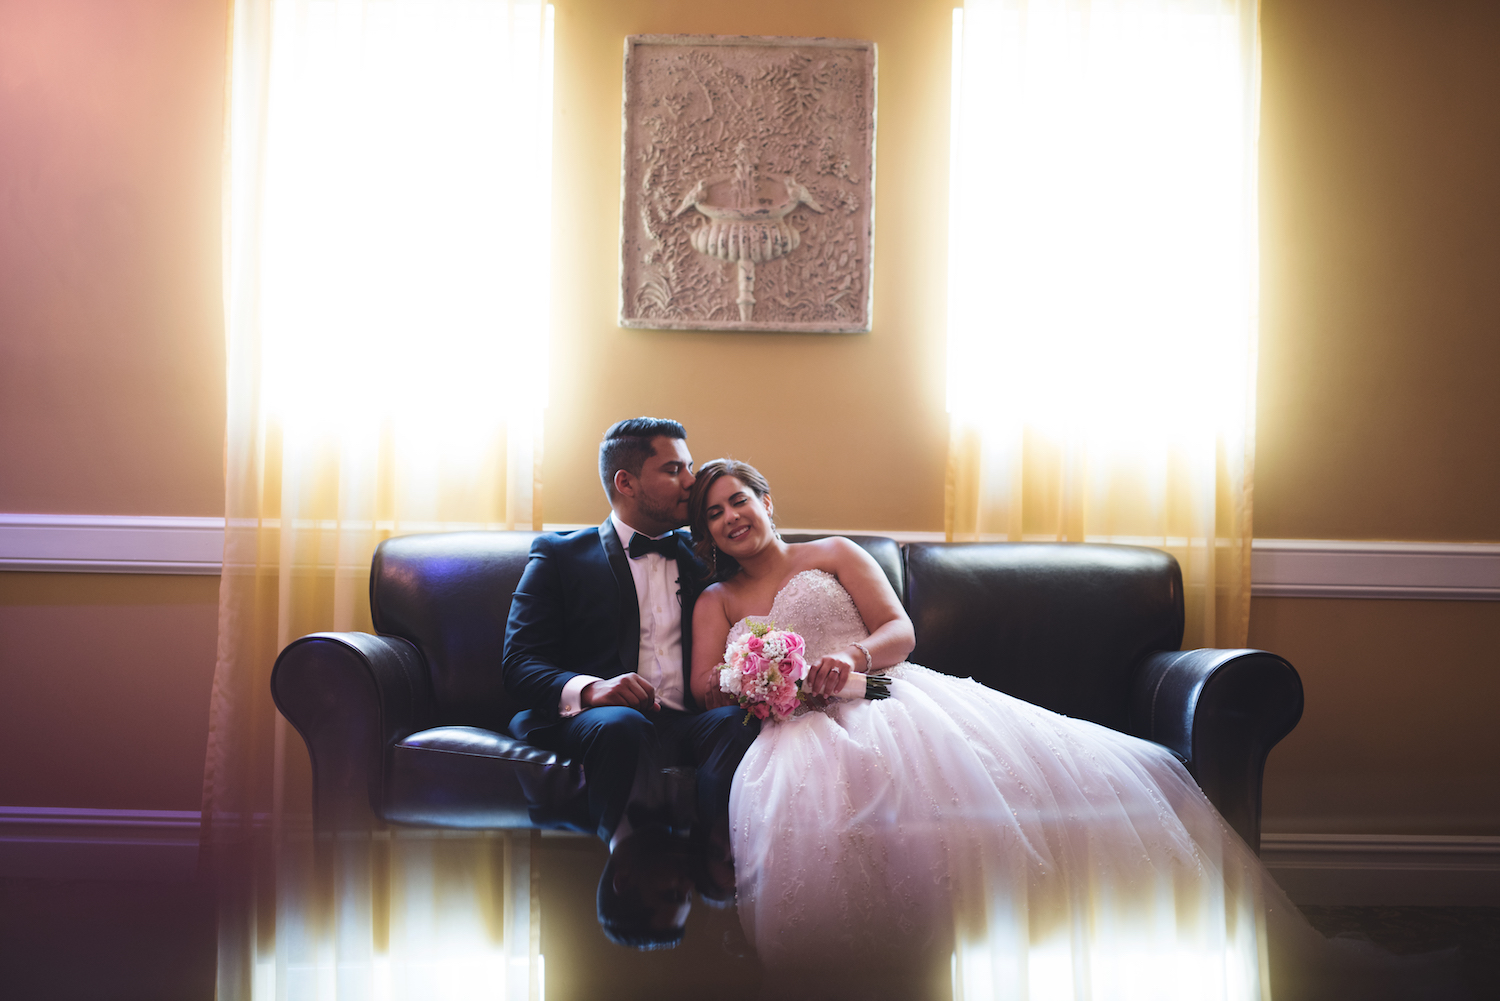 jay&annette-on-couch-nj-wedding-photography